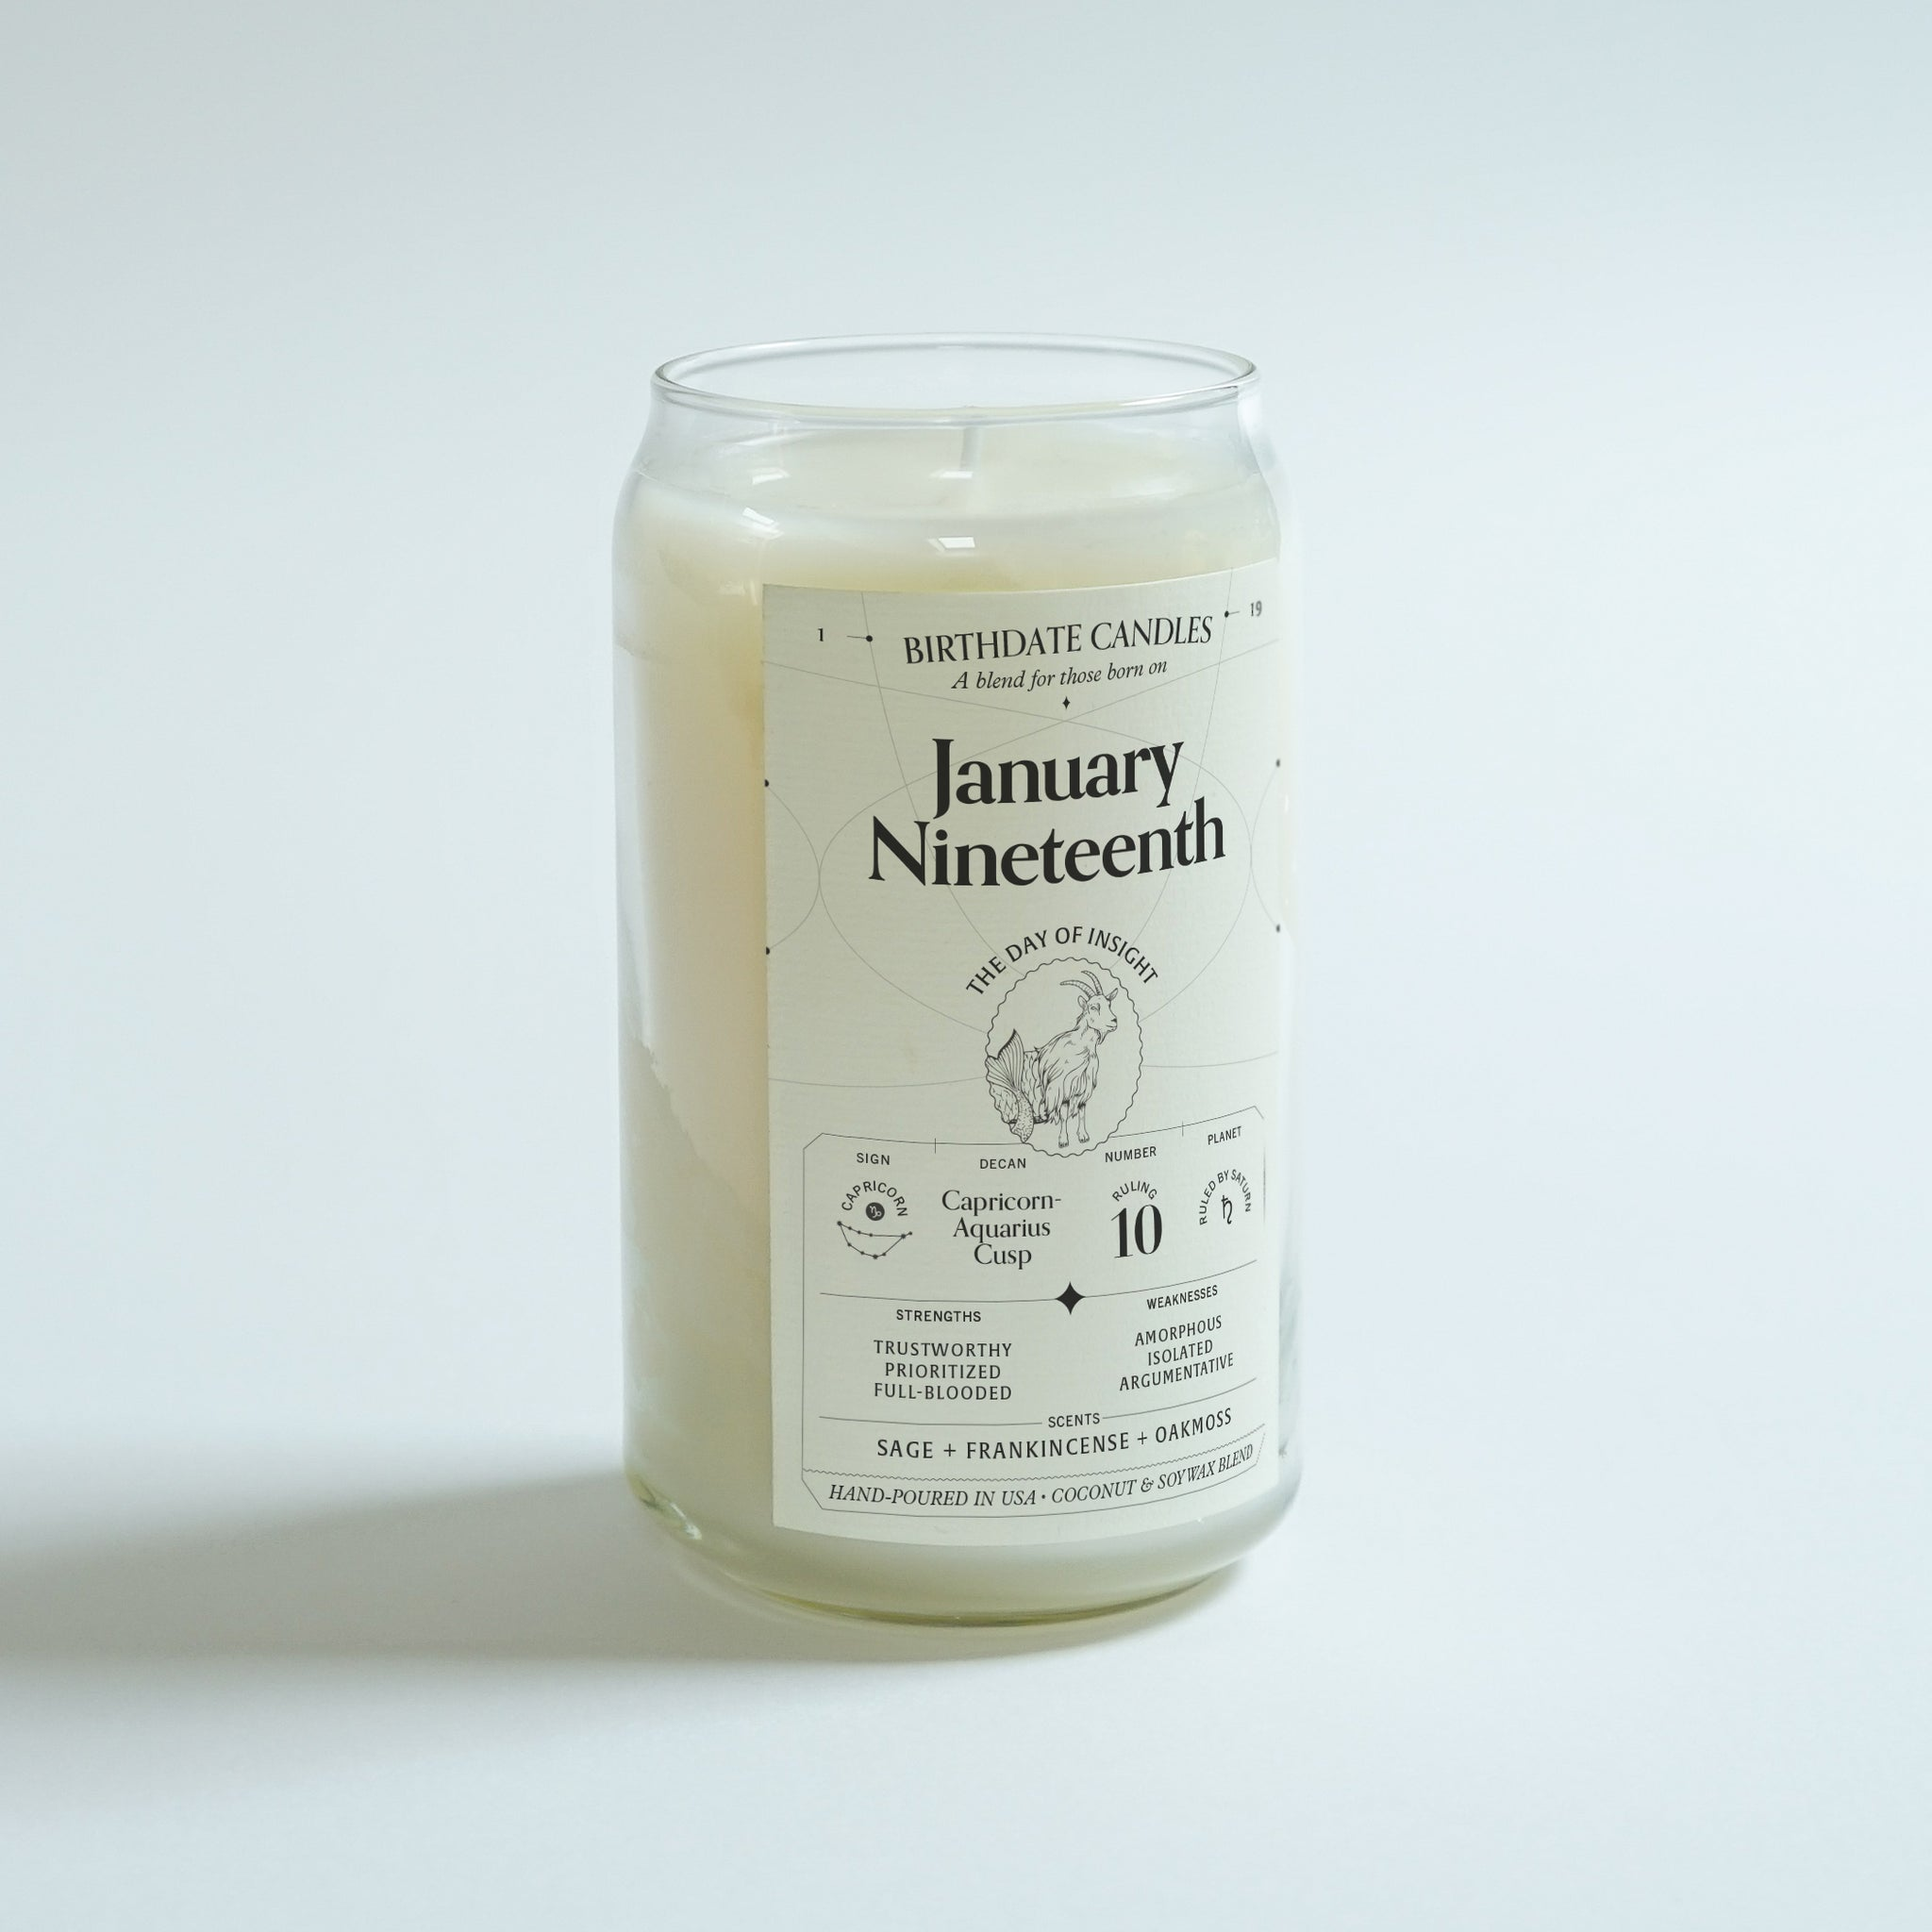 The January Nineteenth Candle